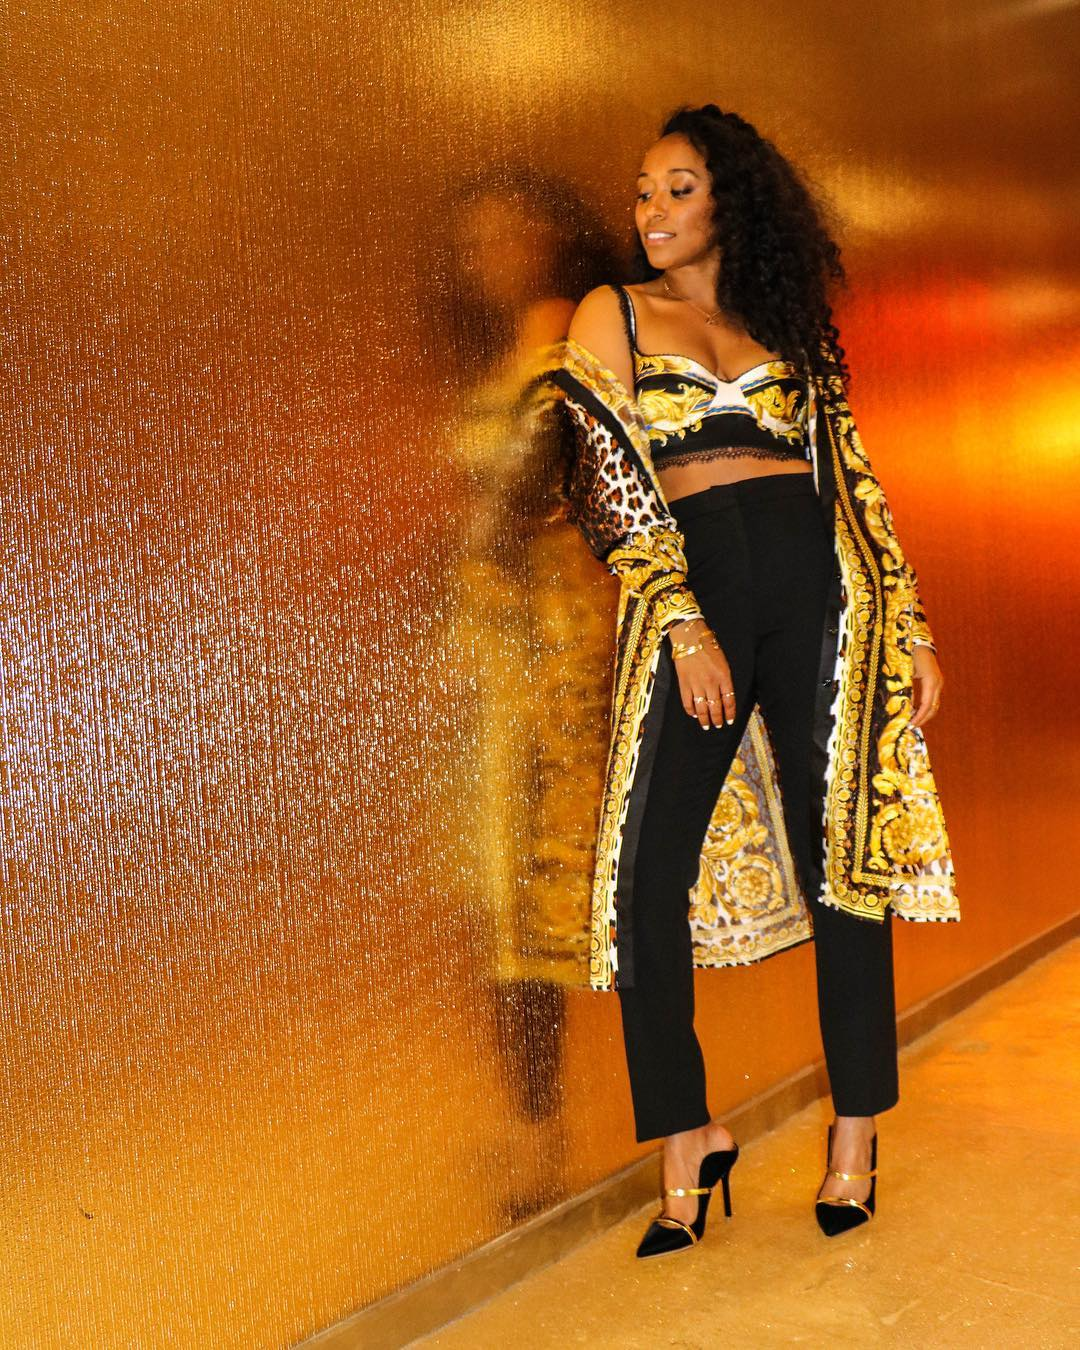 Classy Chic! SHIONA TURINI Is Definitely The Queen Of Crop Tops